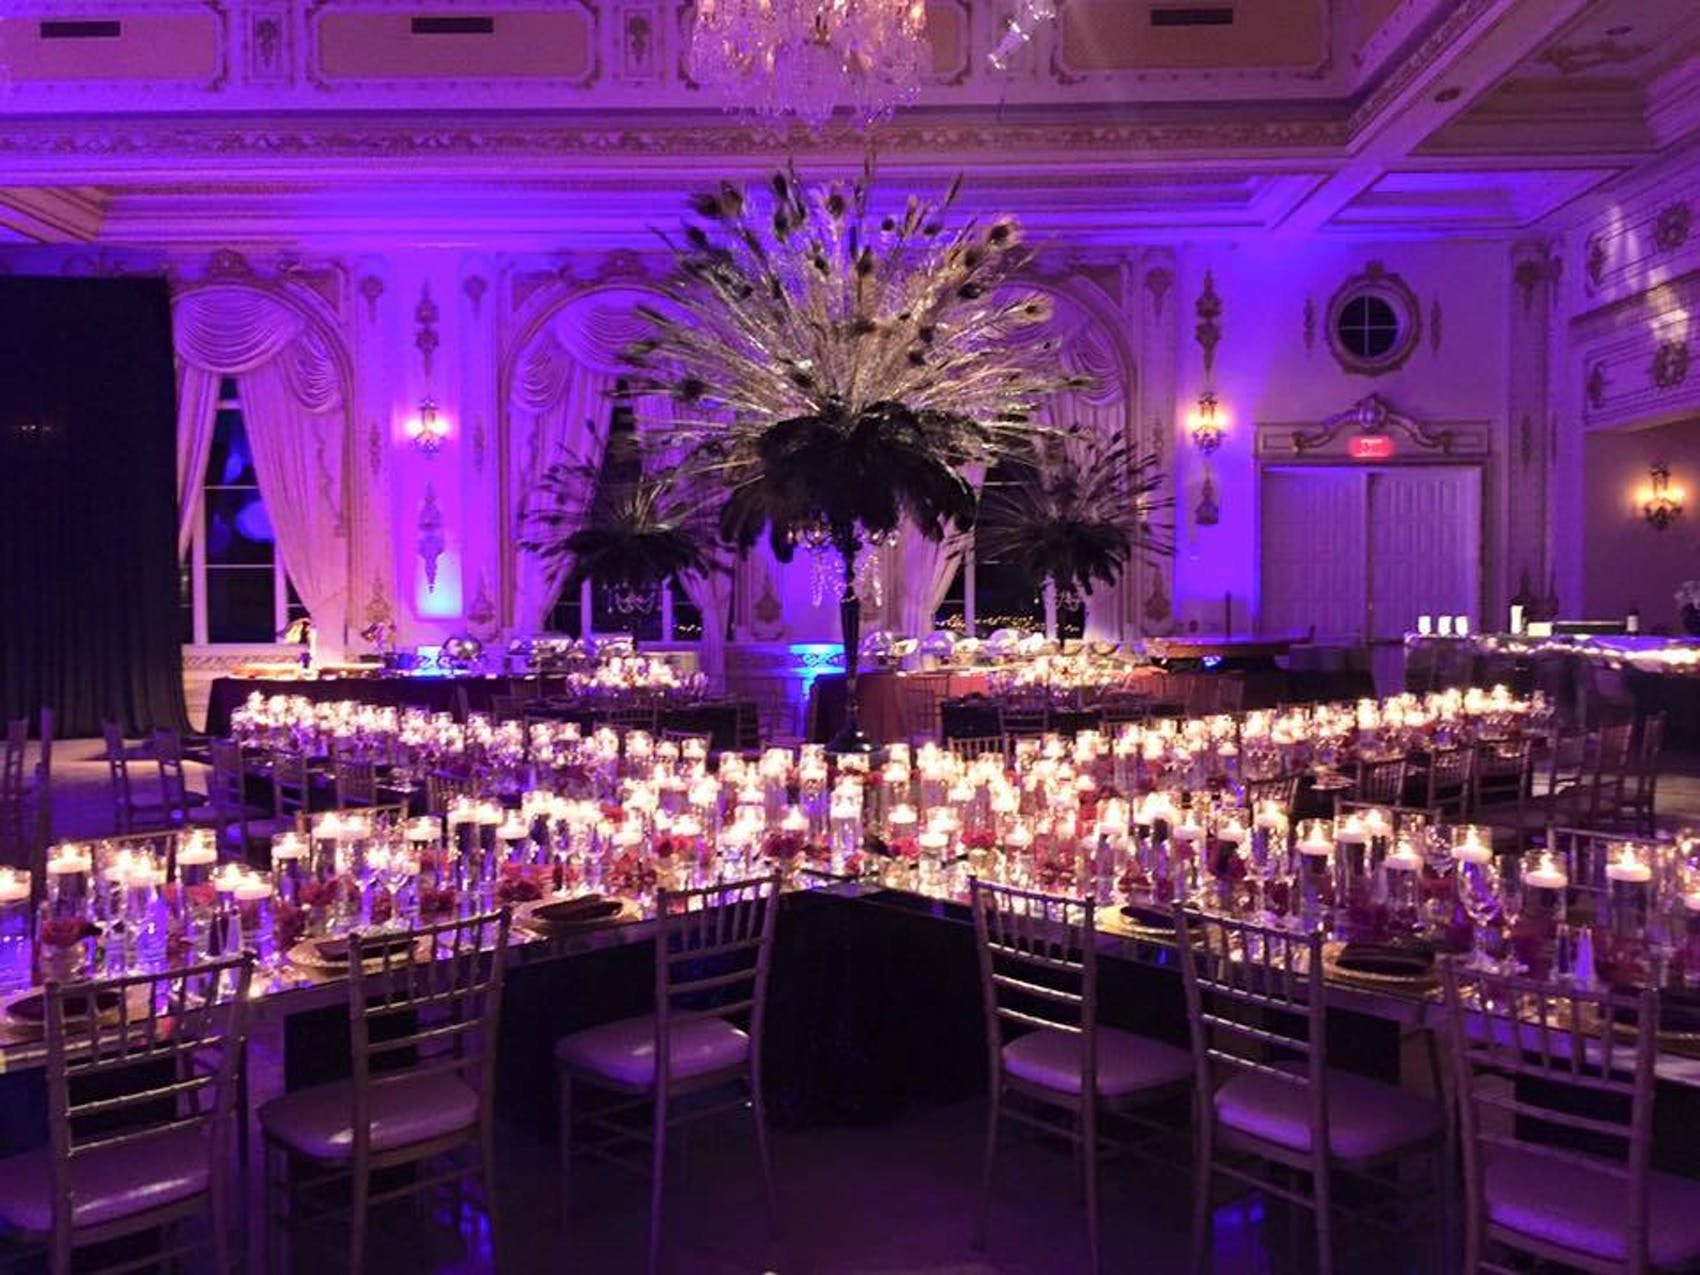 Purple room with tables arranged in x and large peacock feathers in the middle. The tables have candles throughout making them glow.